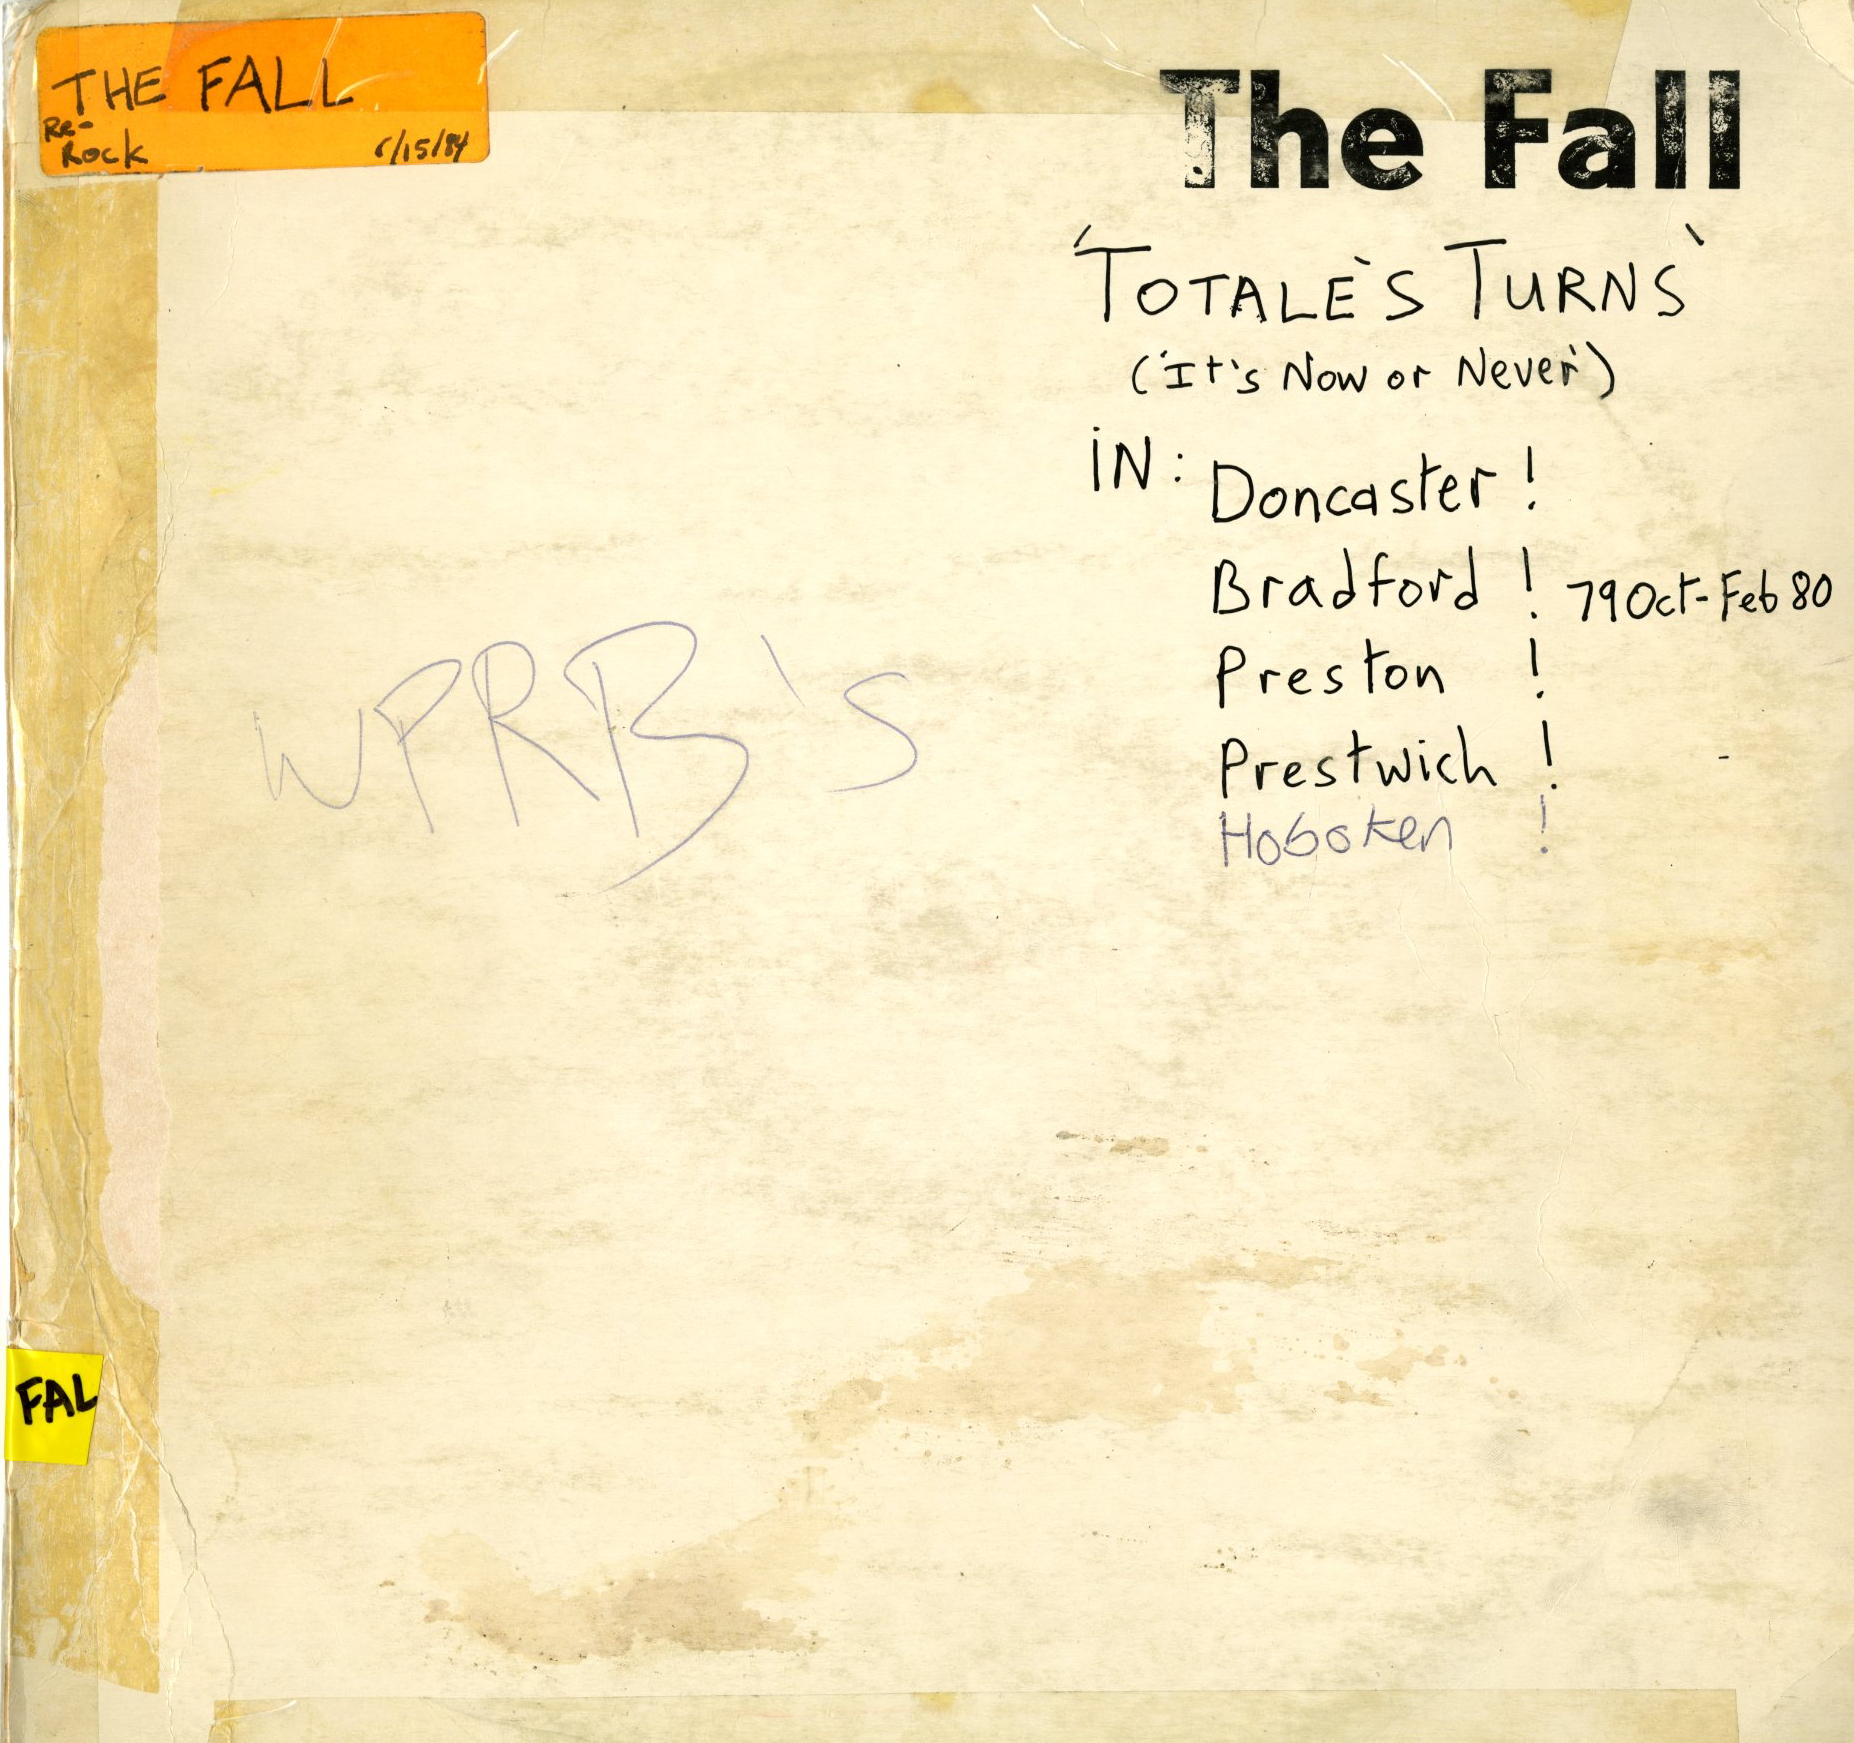 The_Fall_-_Totales_Turns